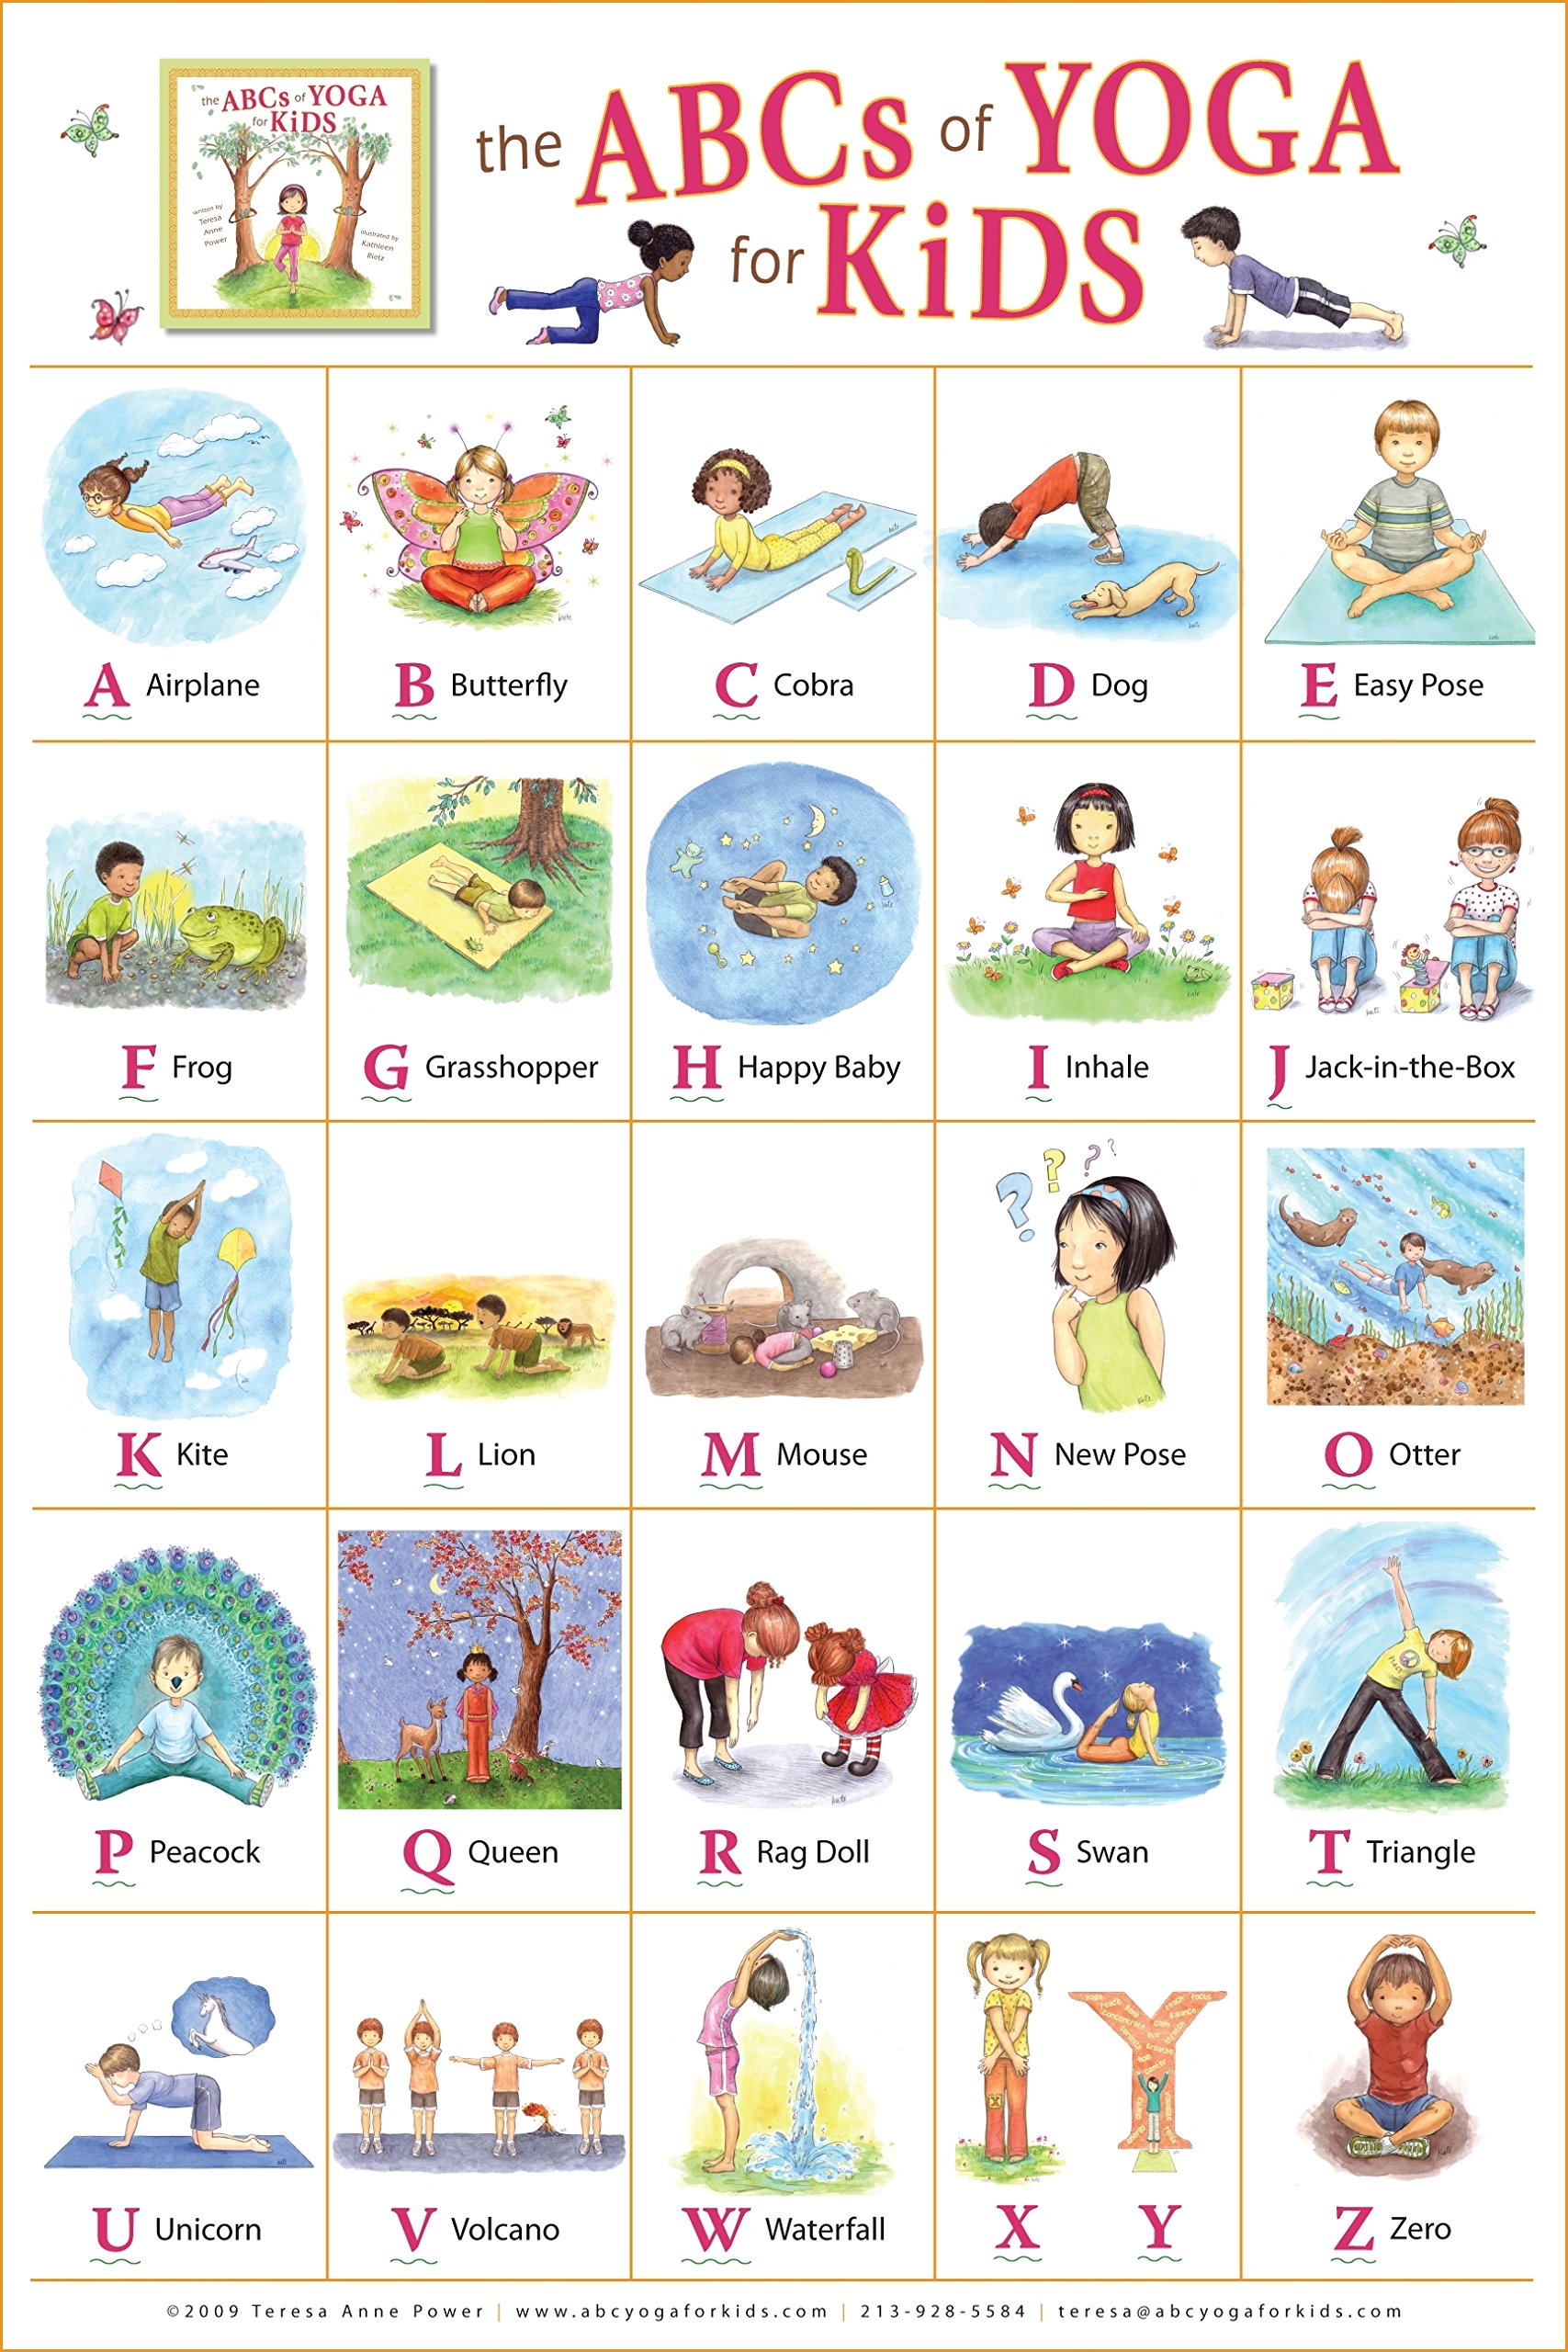 The Abcs Of Yoga For Kids Poster Teresa Anne Power Kathleen Rietz Kathleen Rietz 9780982258712 Amazon Com Books